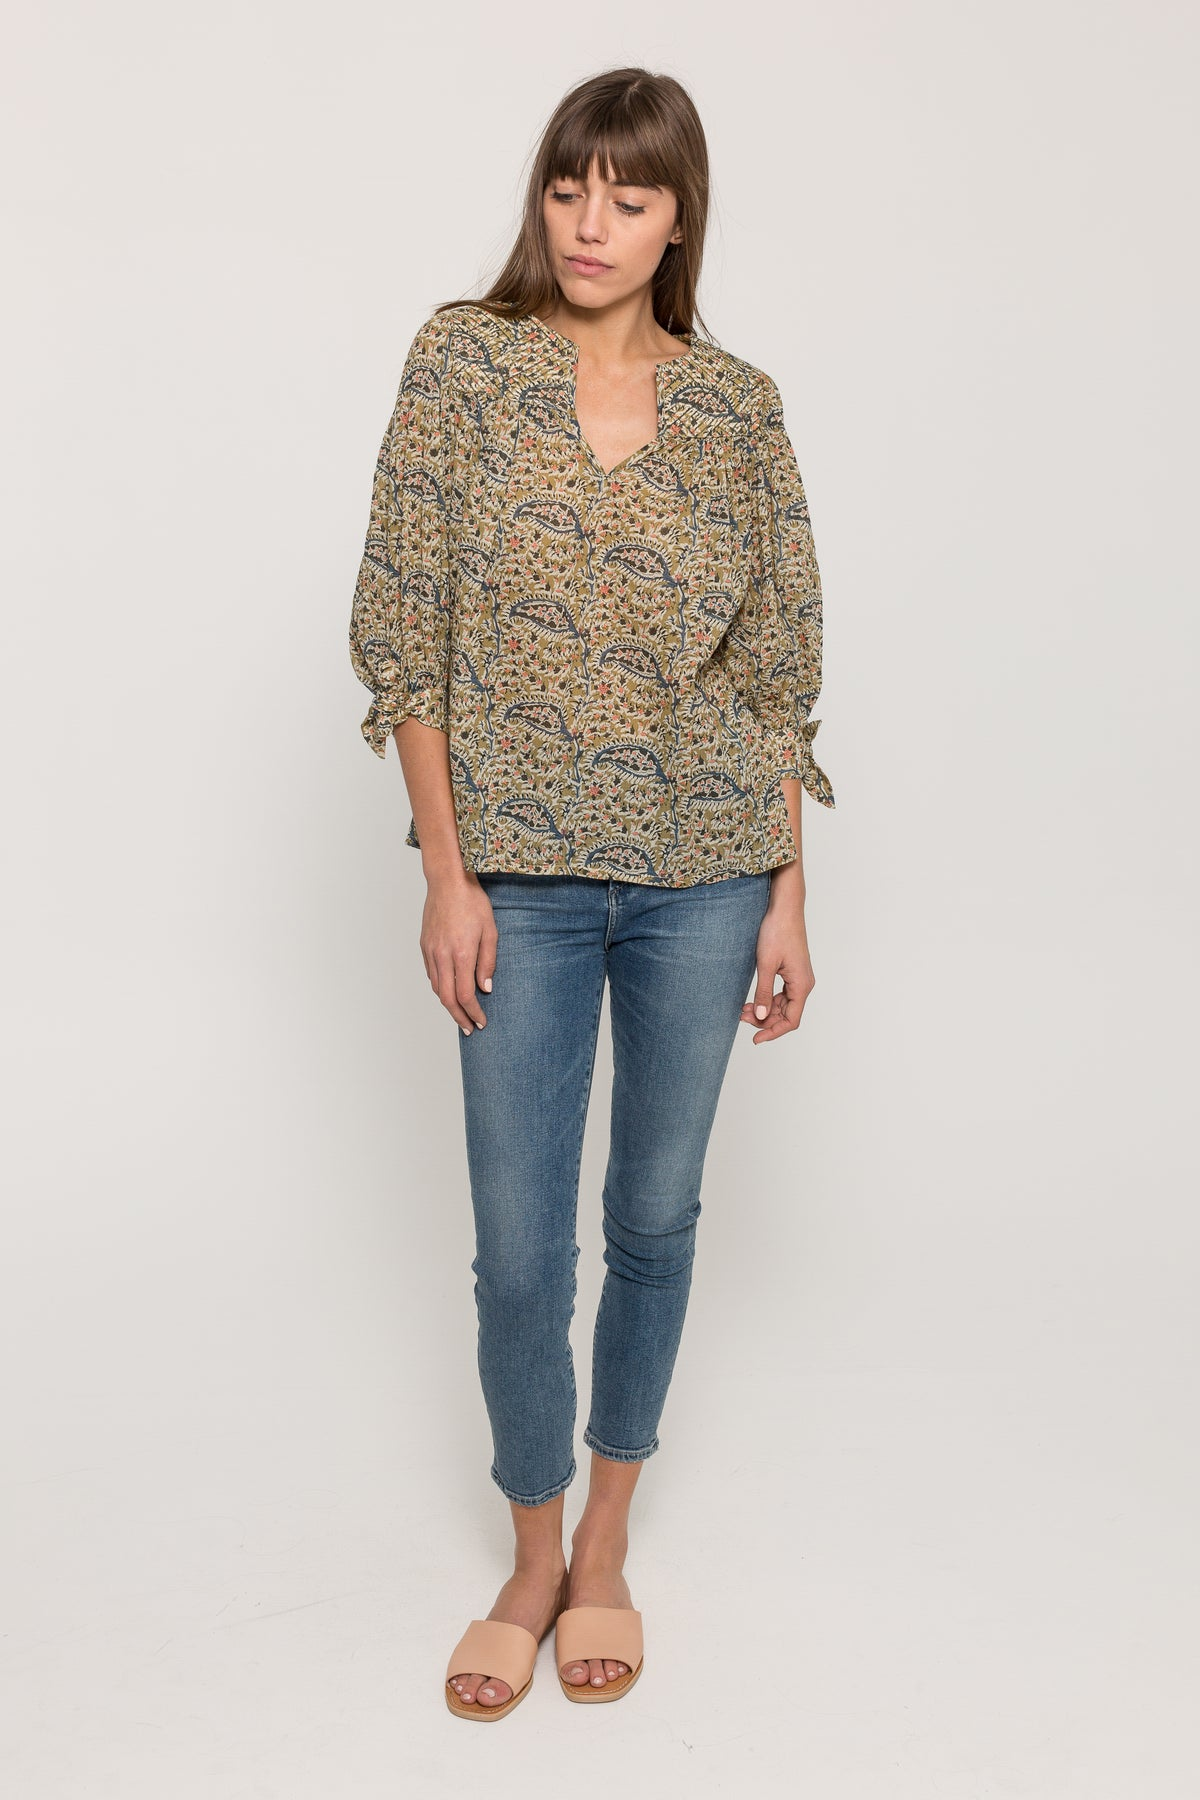 BA&SHROLMY BLOUSE9164